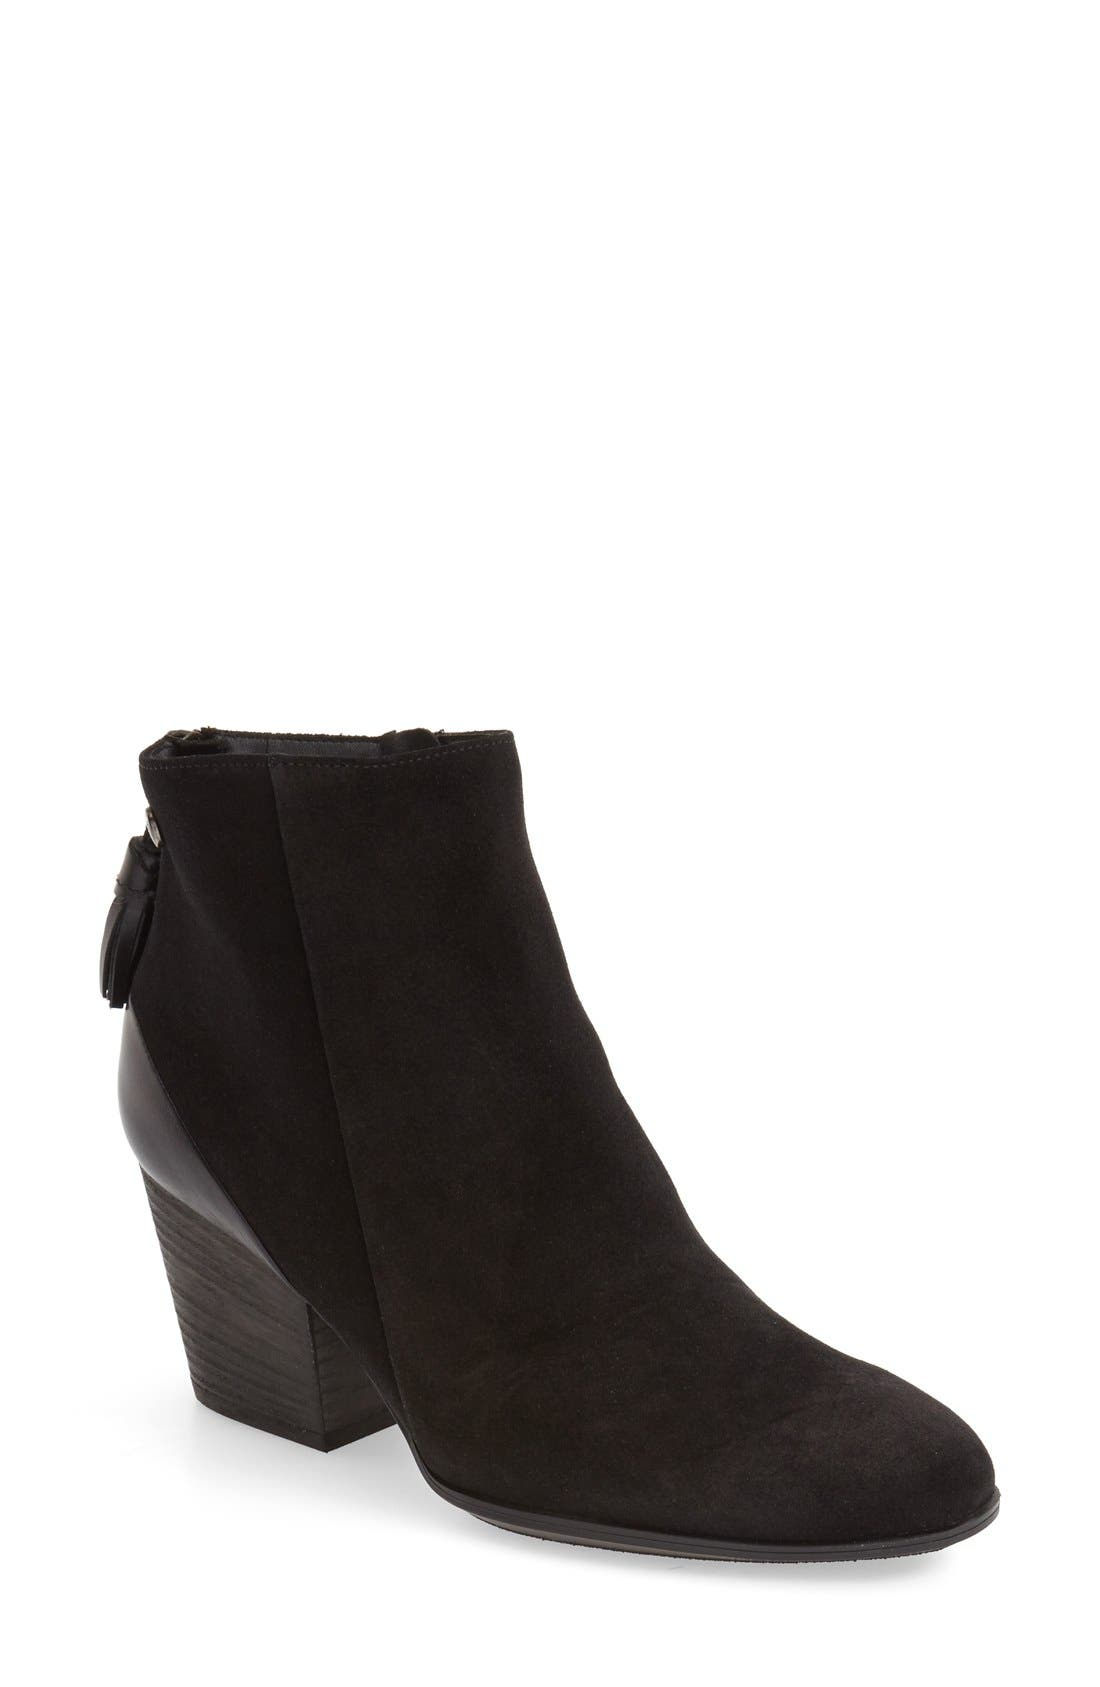 'Jada' Water Resistant Bootie, Main, color, 003